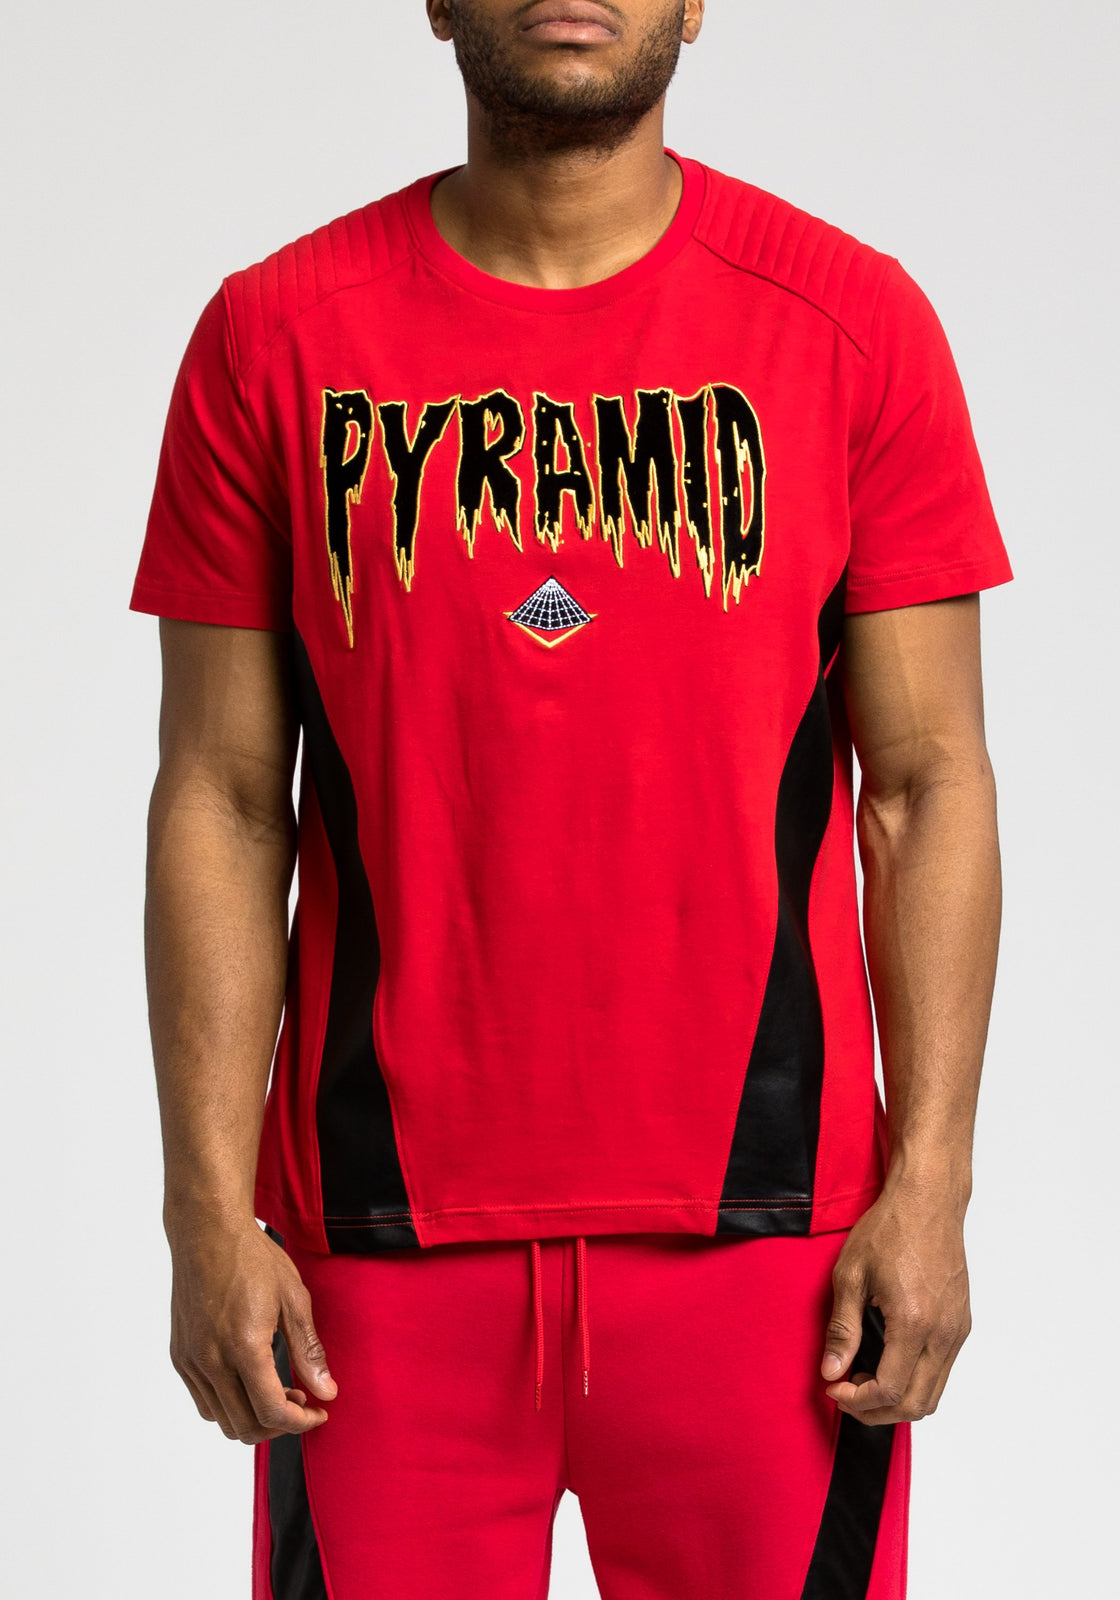 PU Pyramid Tee - Color: RED